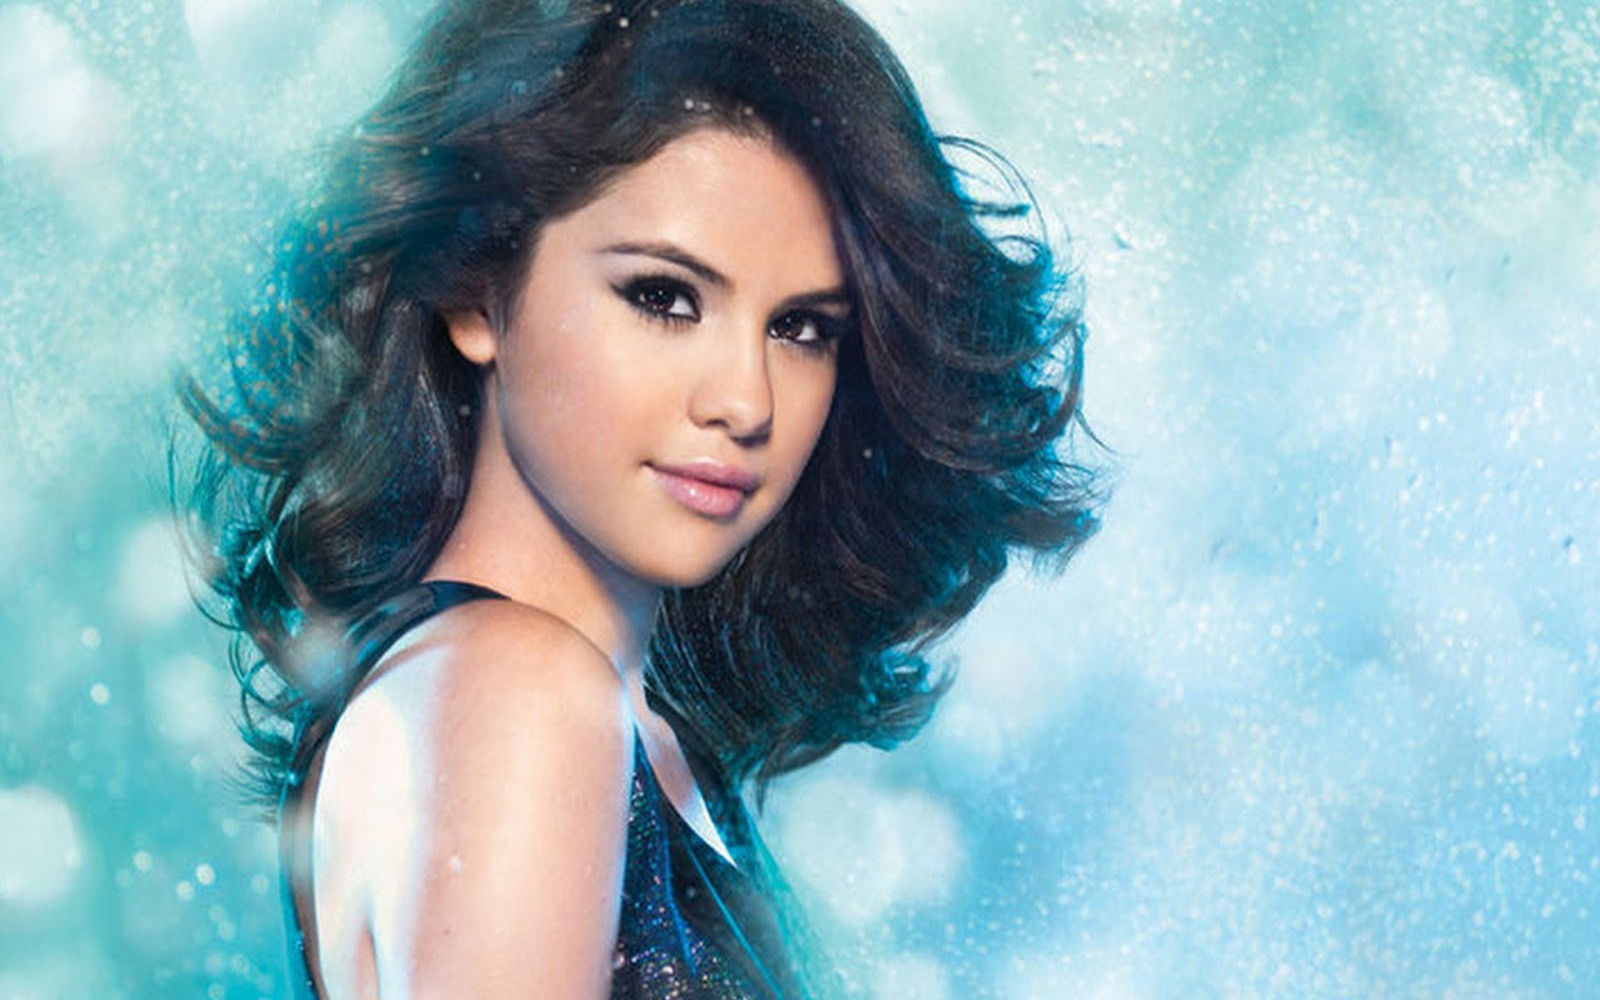 selena gomez latest hot hd wallpapers for desktop and notebook